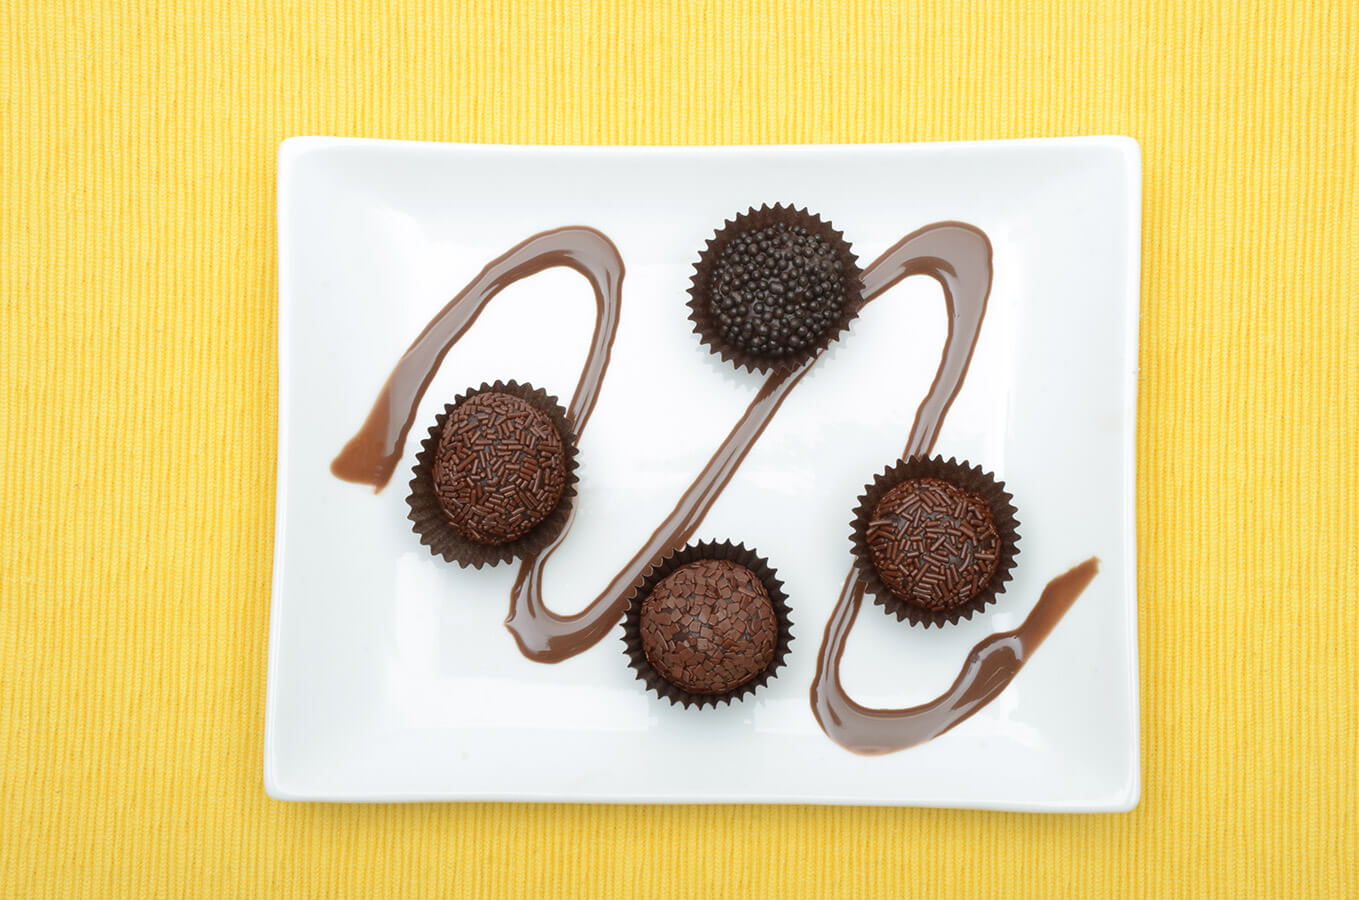 Brigadeiro Food Photography by Carrie Morgan